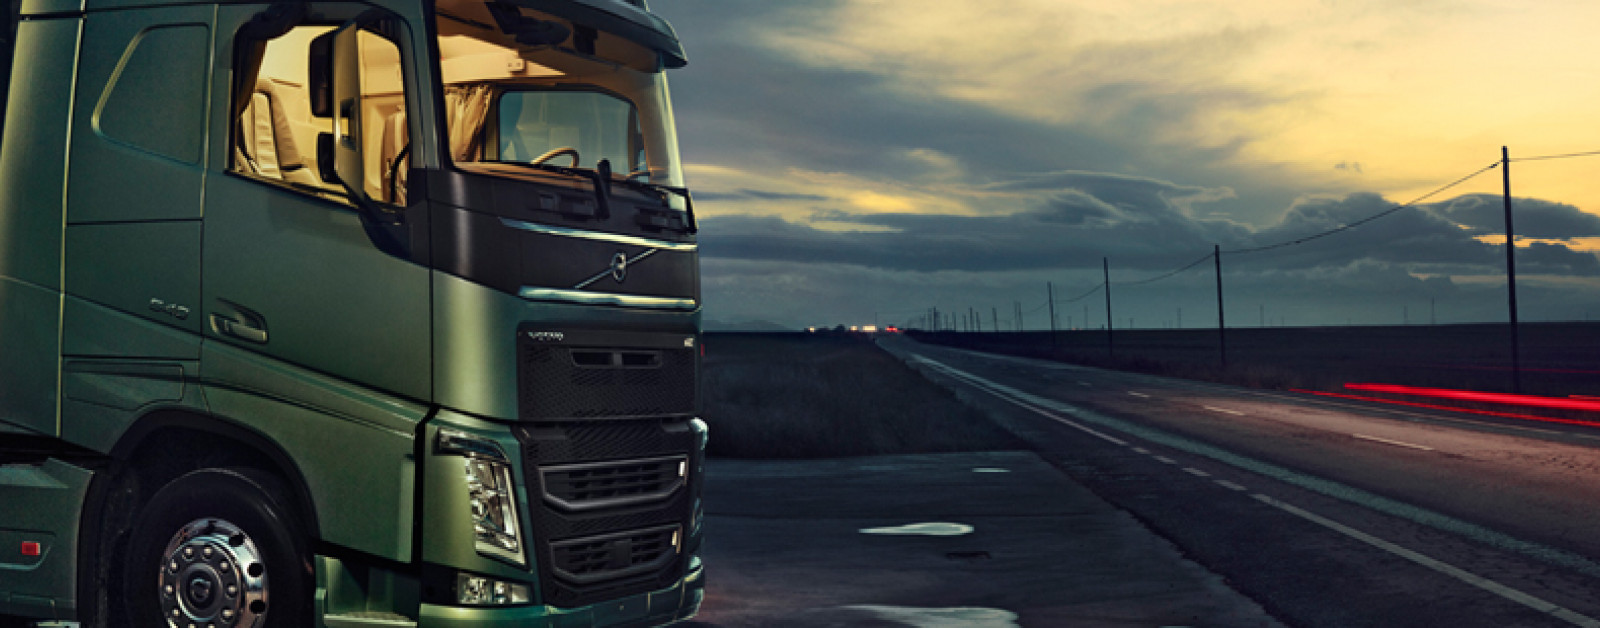 The new Volvo FH series